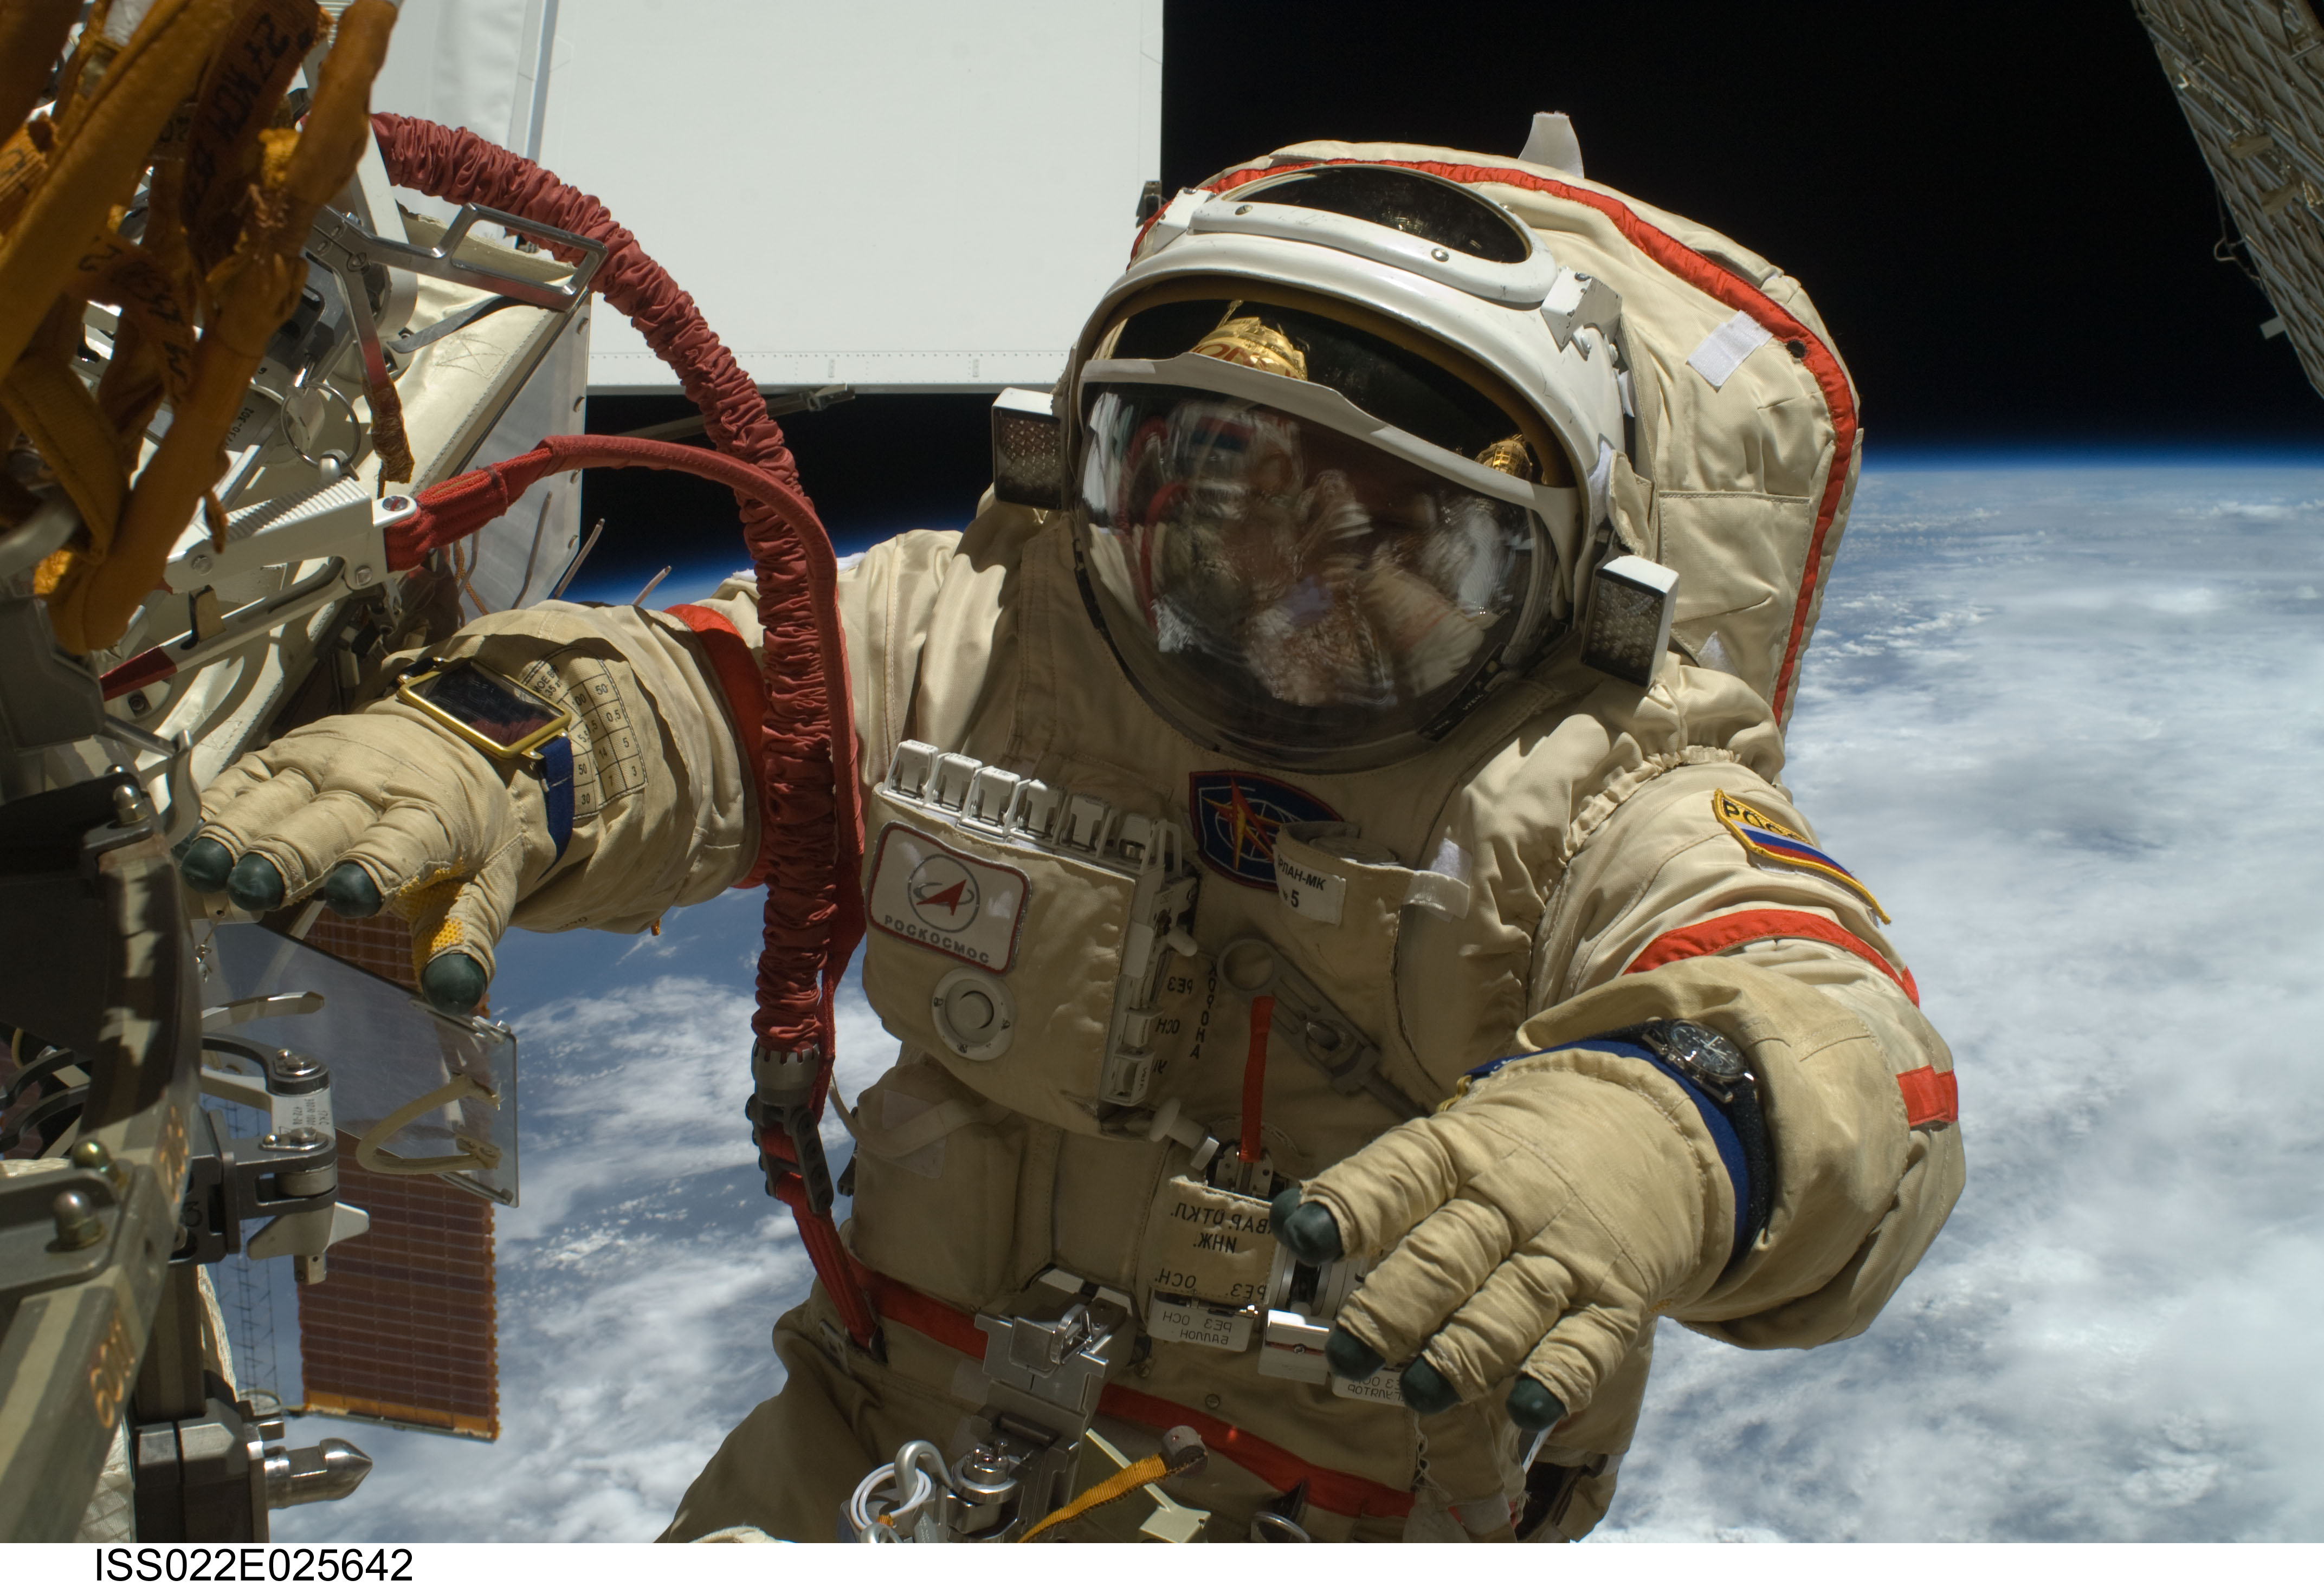 astronaut in space currently - photo #49